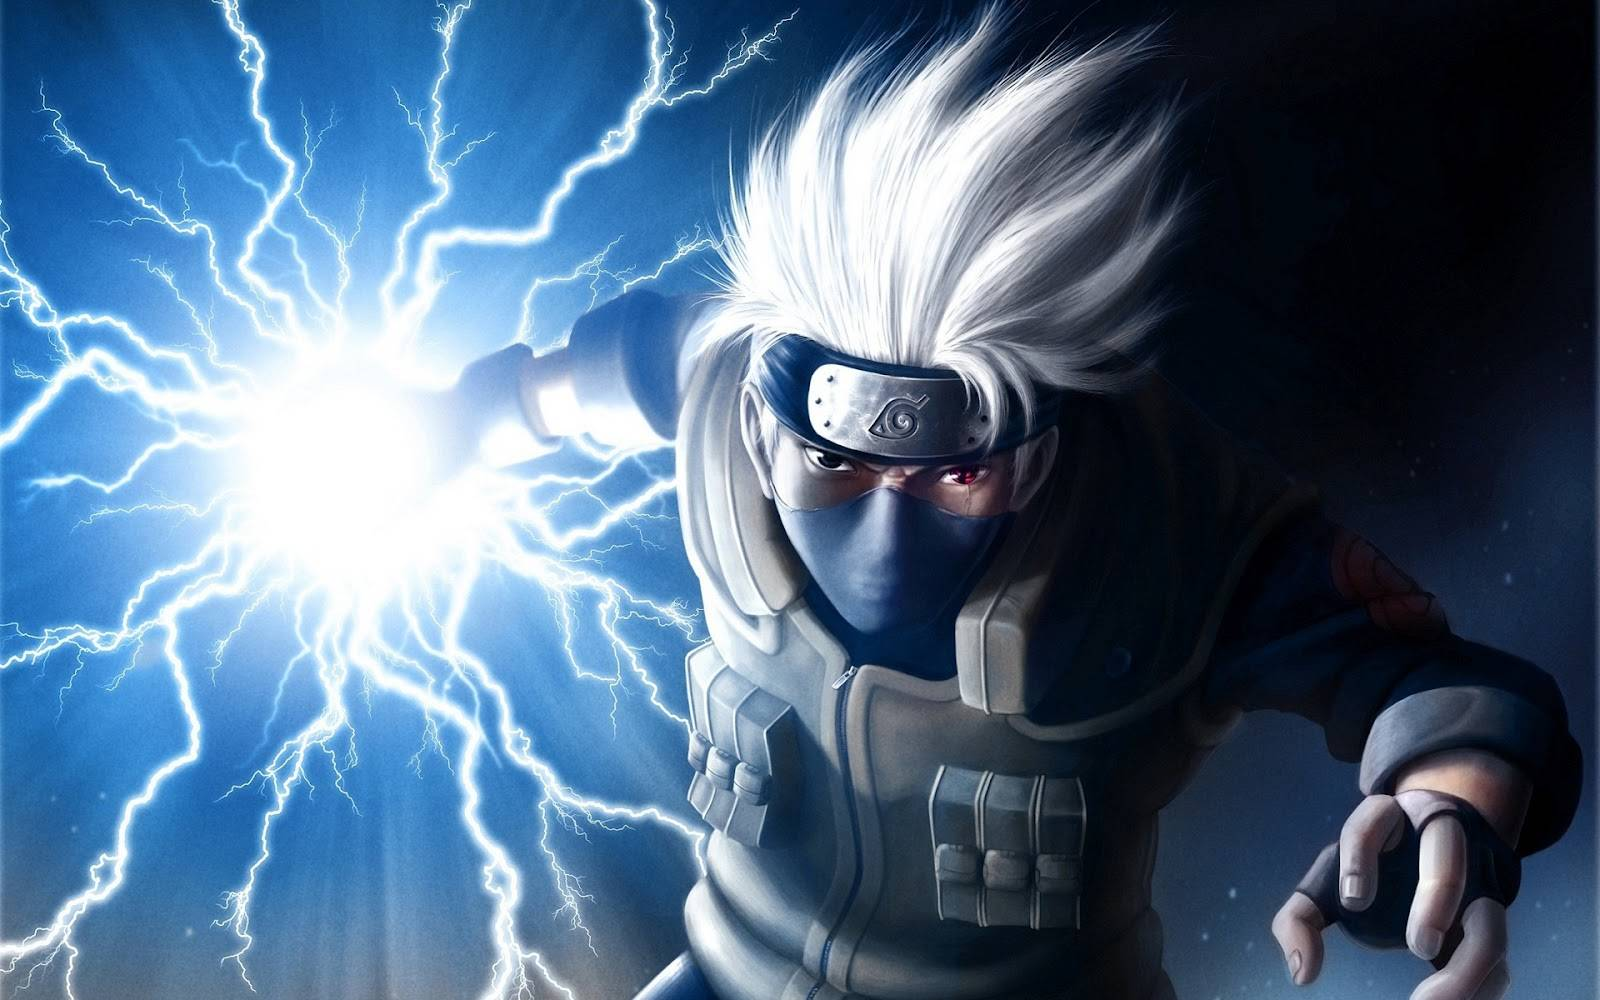 friends download naruto 3d wallpapers which is under the 3d wallpapers 1600x1000